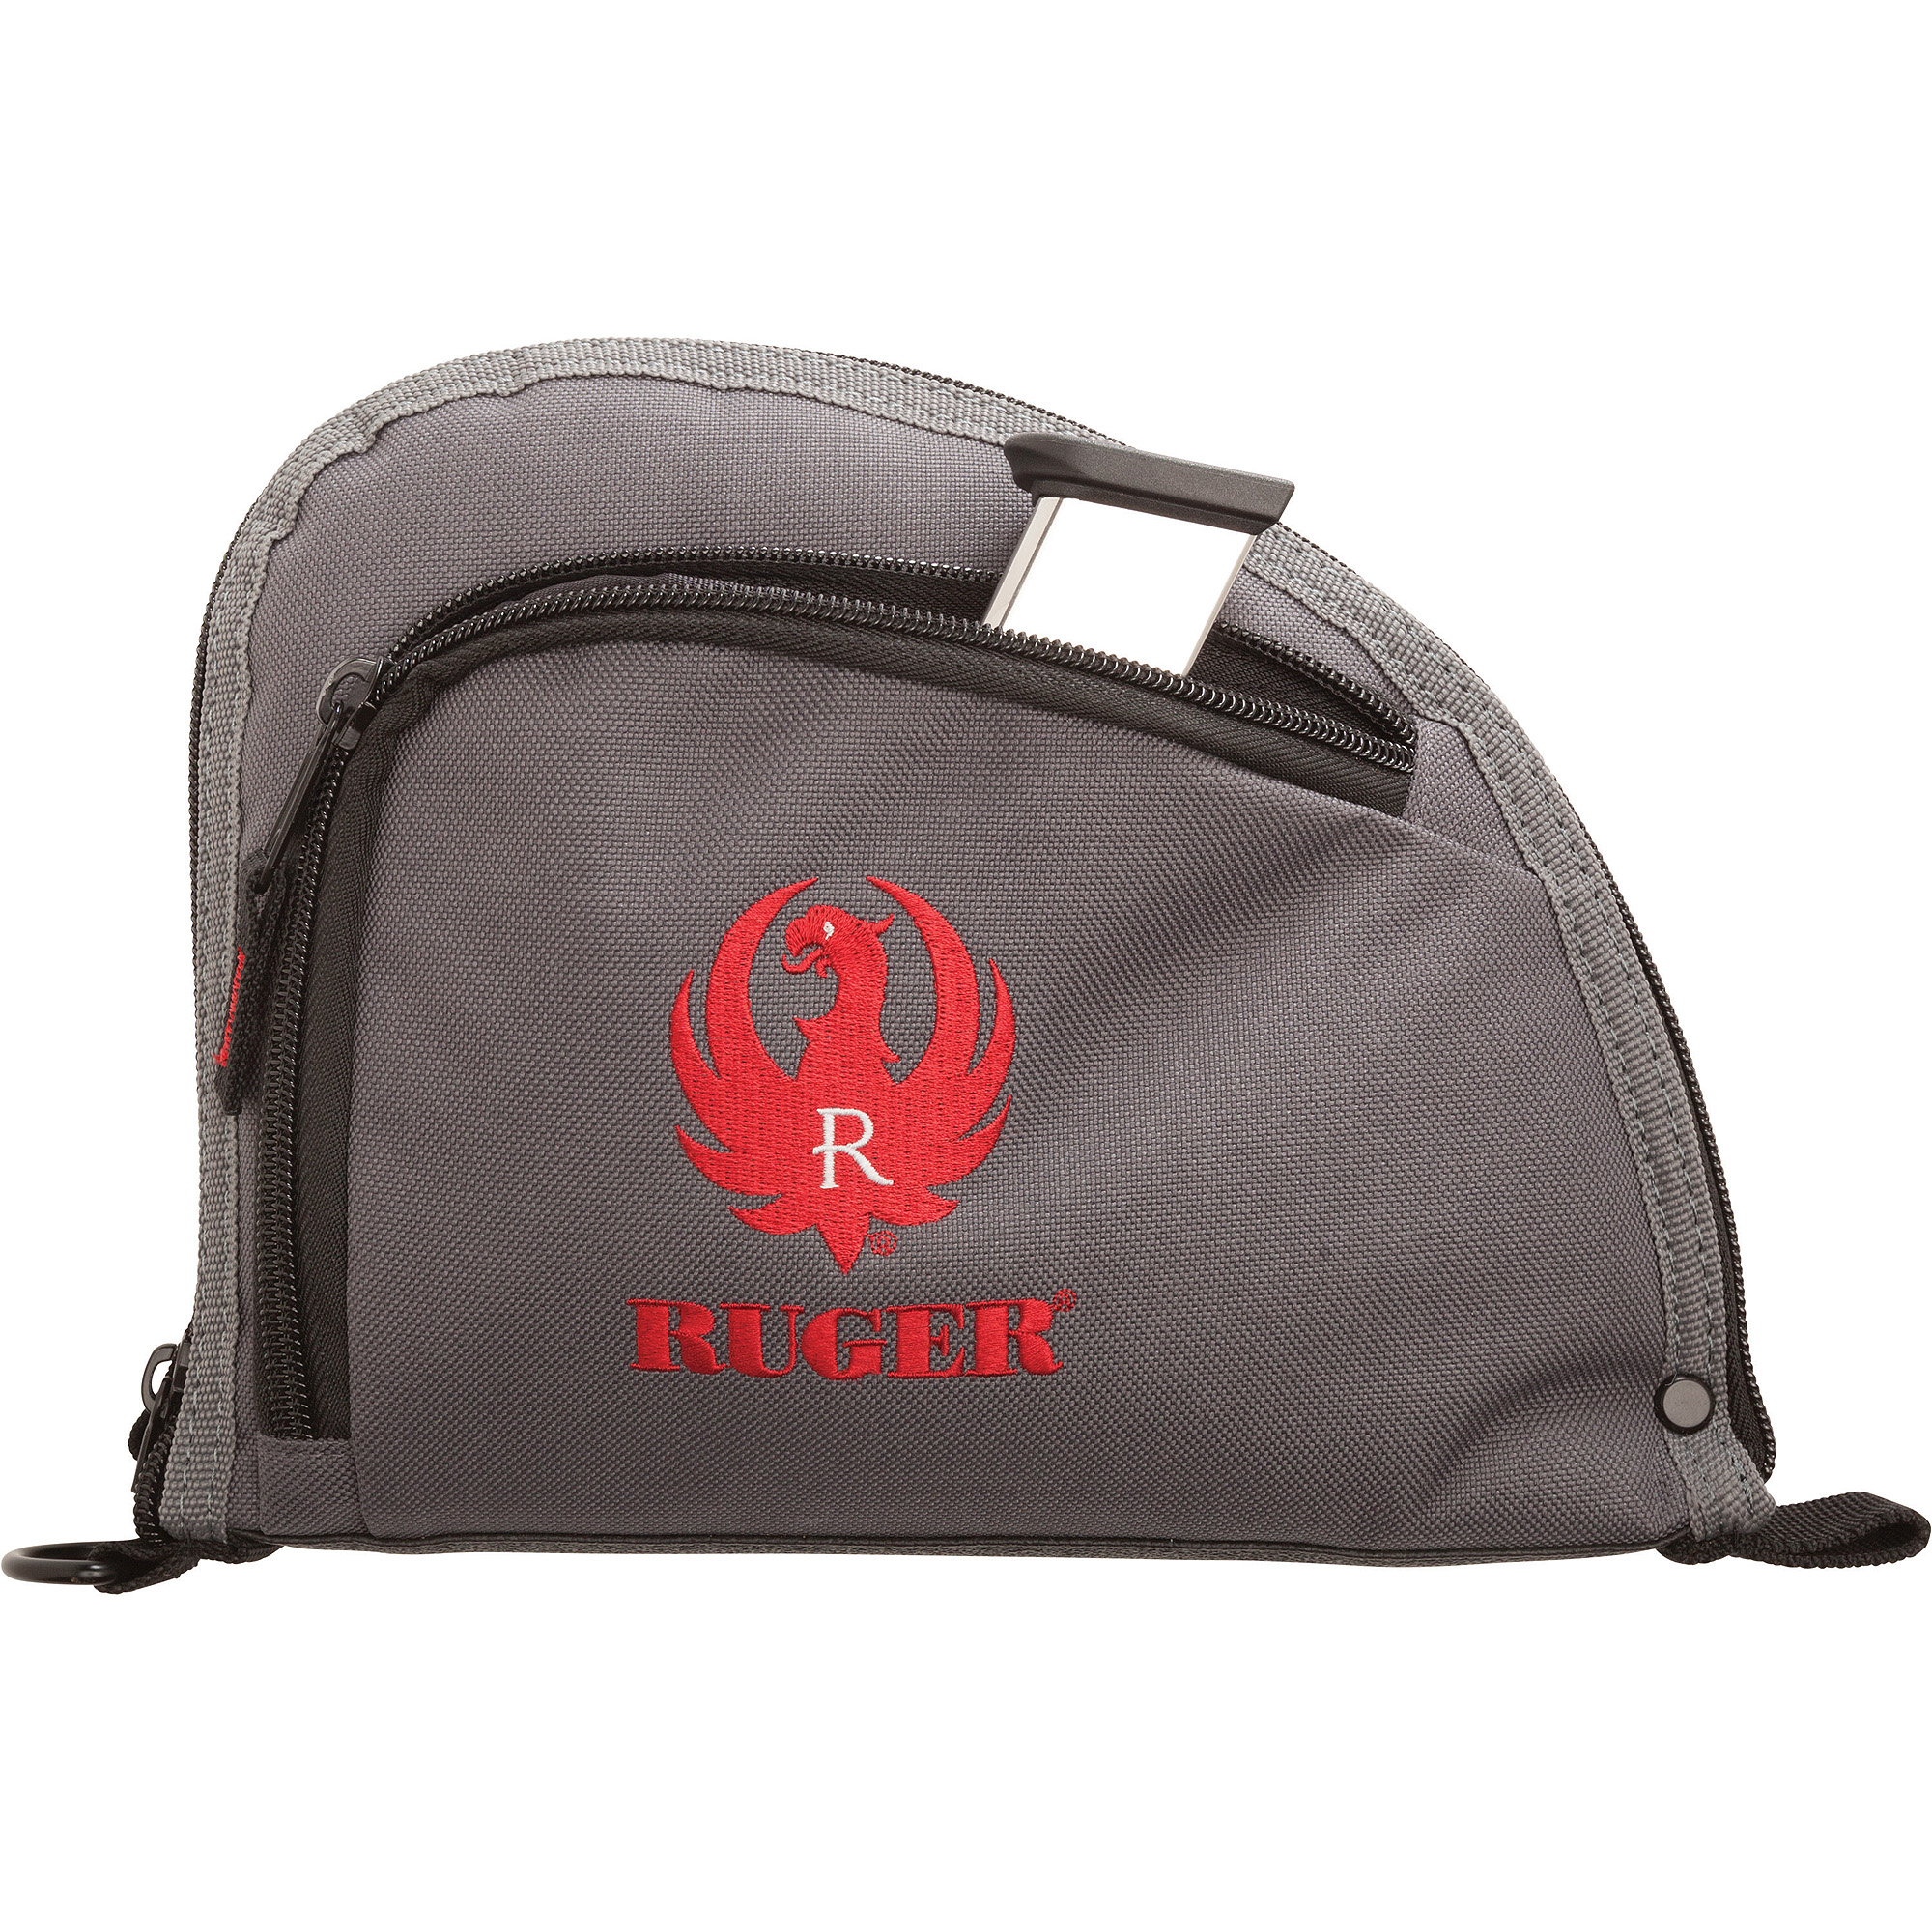 "Ruger One Pocket 9"" Auto-Fit Handgun Case, Gray by Allen Company"